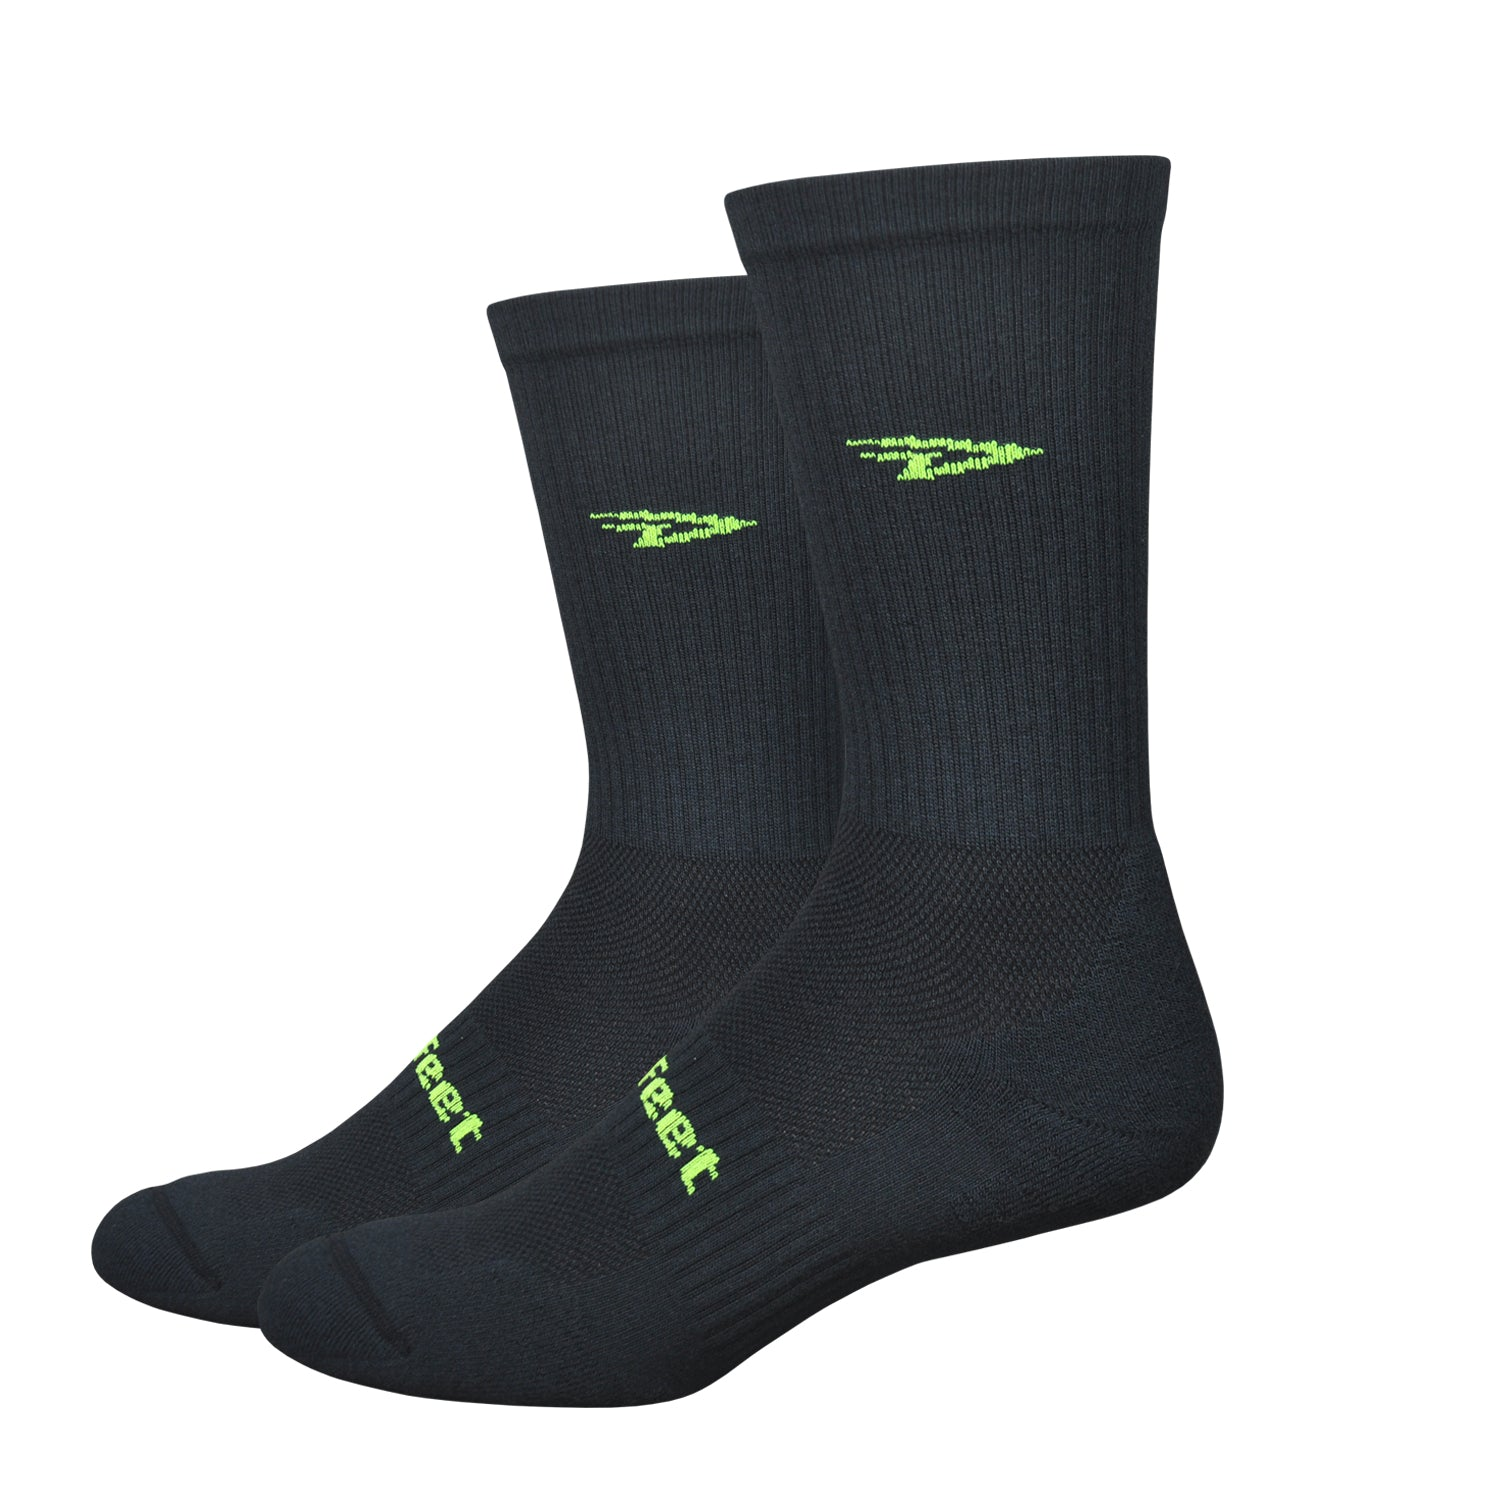 D-Evo Crew Black w/Neon Yellow